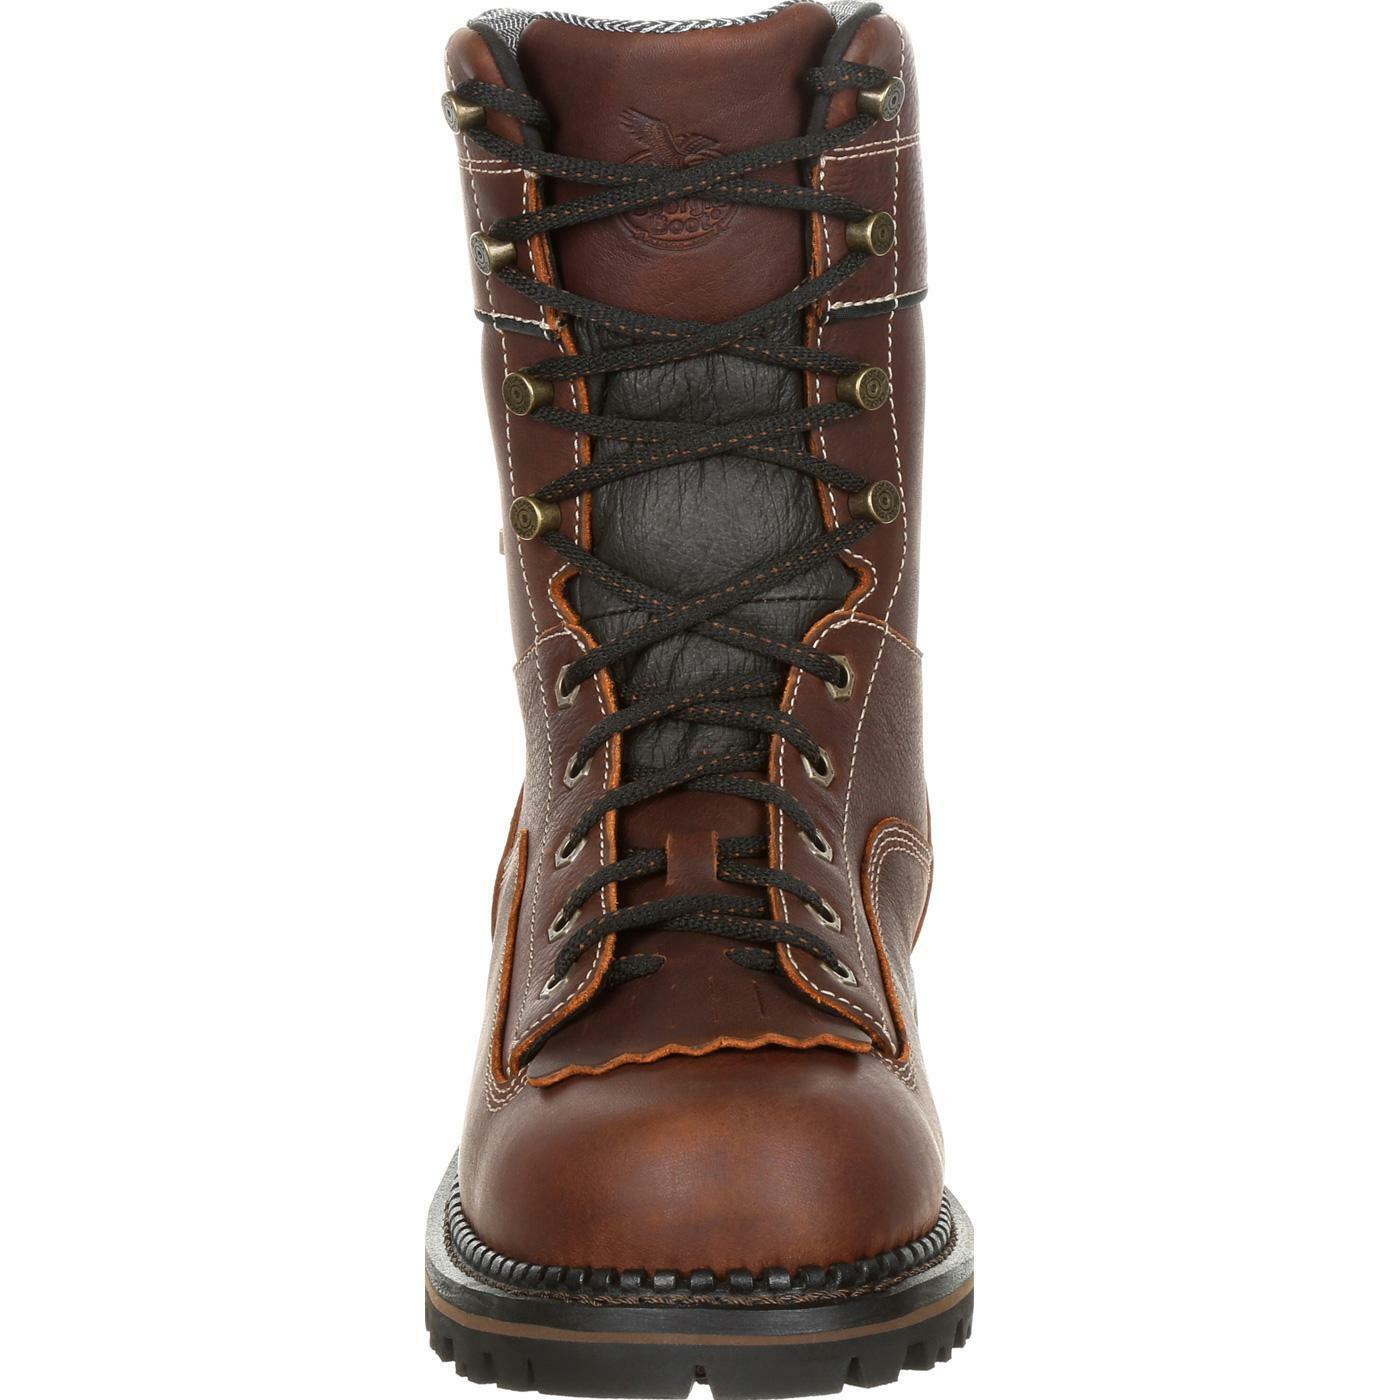 GEORGIA AMP LT LOGGER COMPOSITE TOE LOW HEEL WTRP WTRP WTRP WORK Stiefel GB00238  ALL GrößeS f1bf76